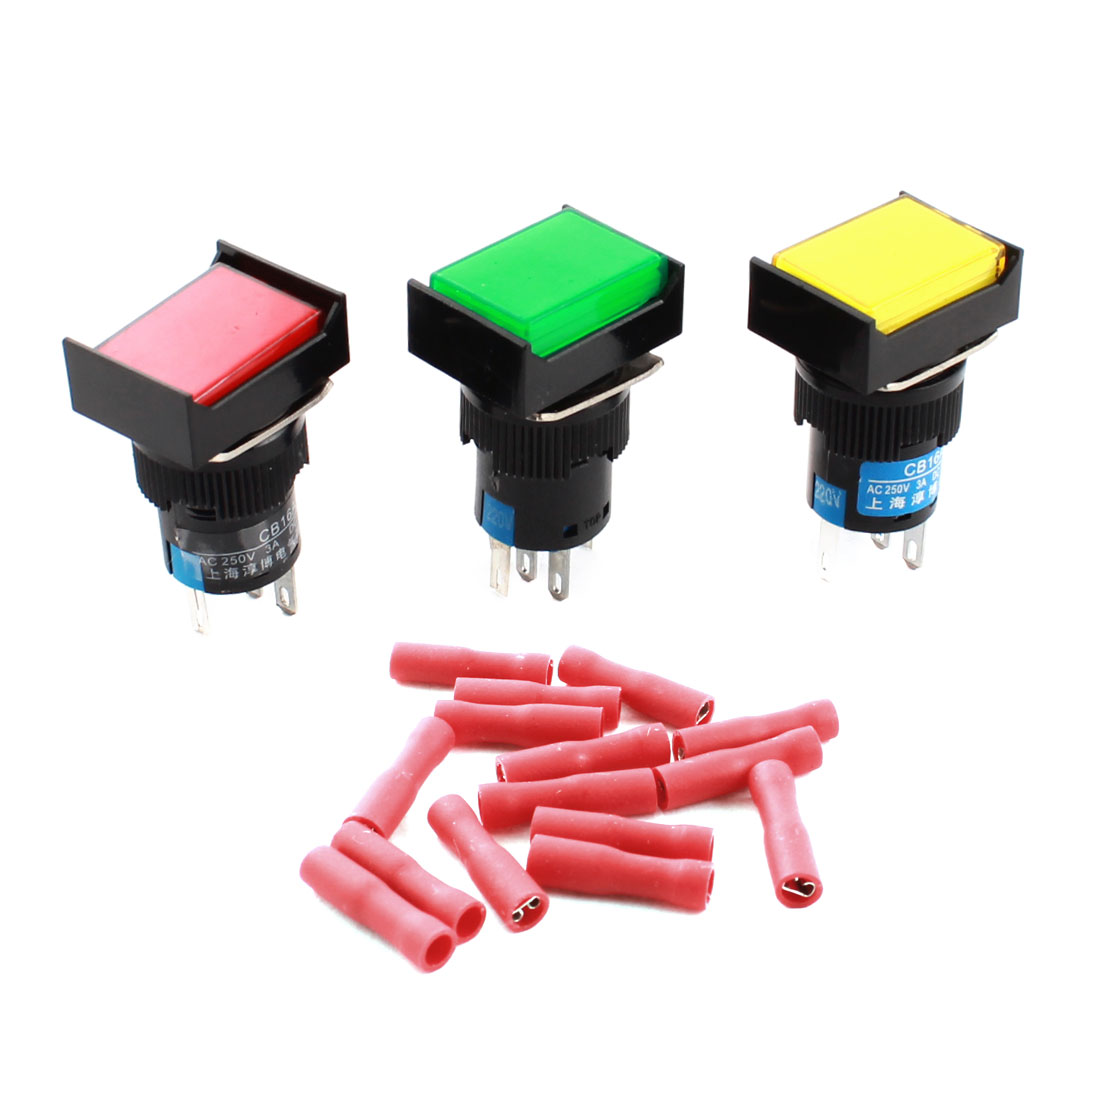 3pcs AC220V Red Green Yellow Pilot Light 5Pins 16mm Thread Panel SPDT Locking Rectangle Head Pushbutton Switch + 15pcs Crimp Terminals